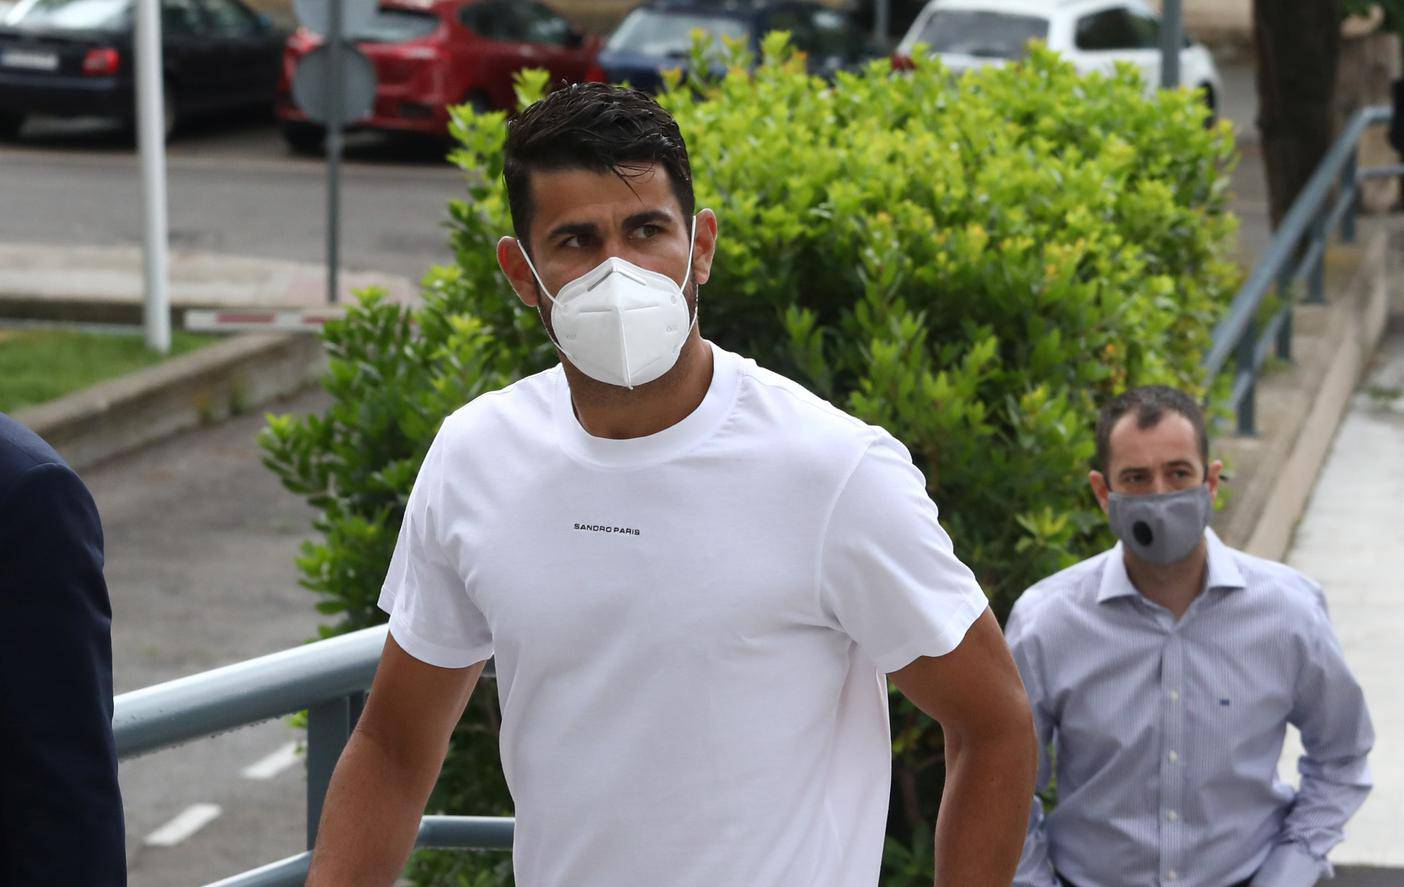 Atletico Madrid's Diego Costa arrives at a court to attend a trial for tax fraud